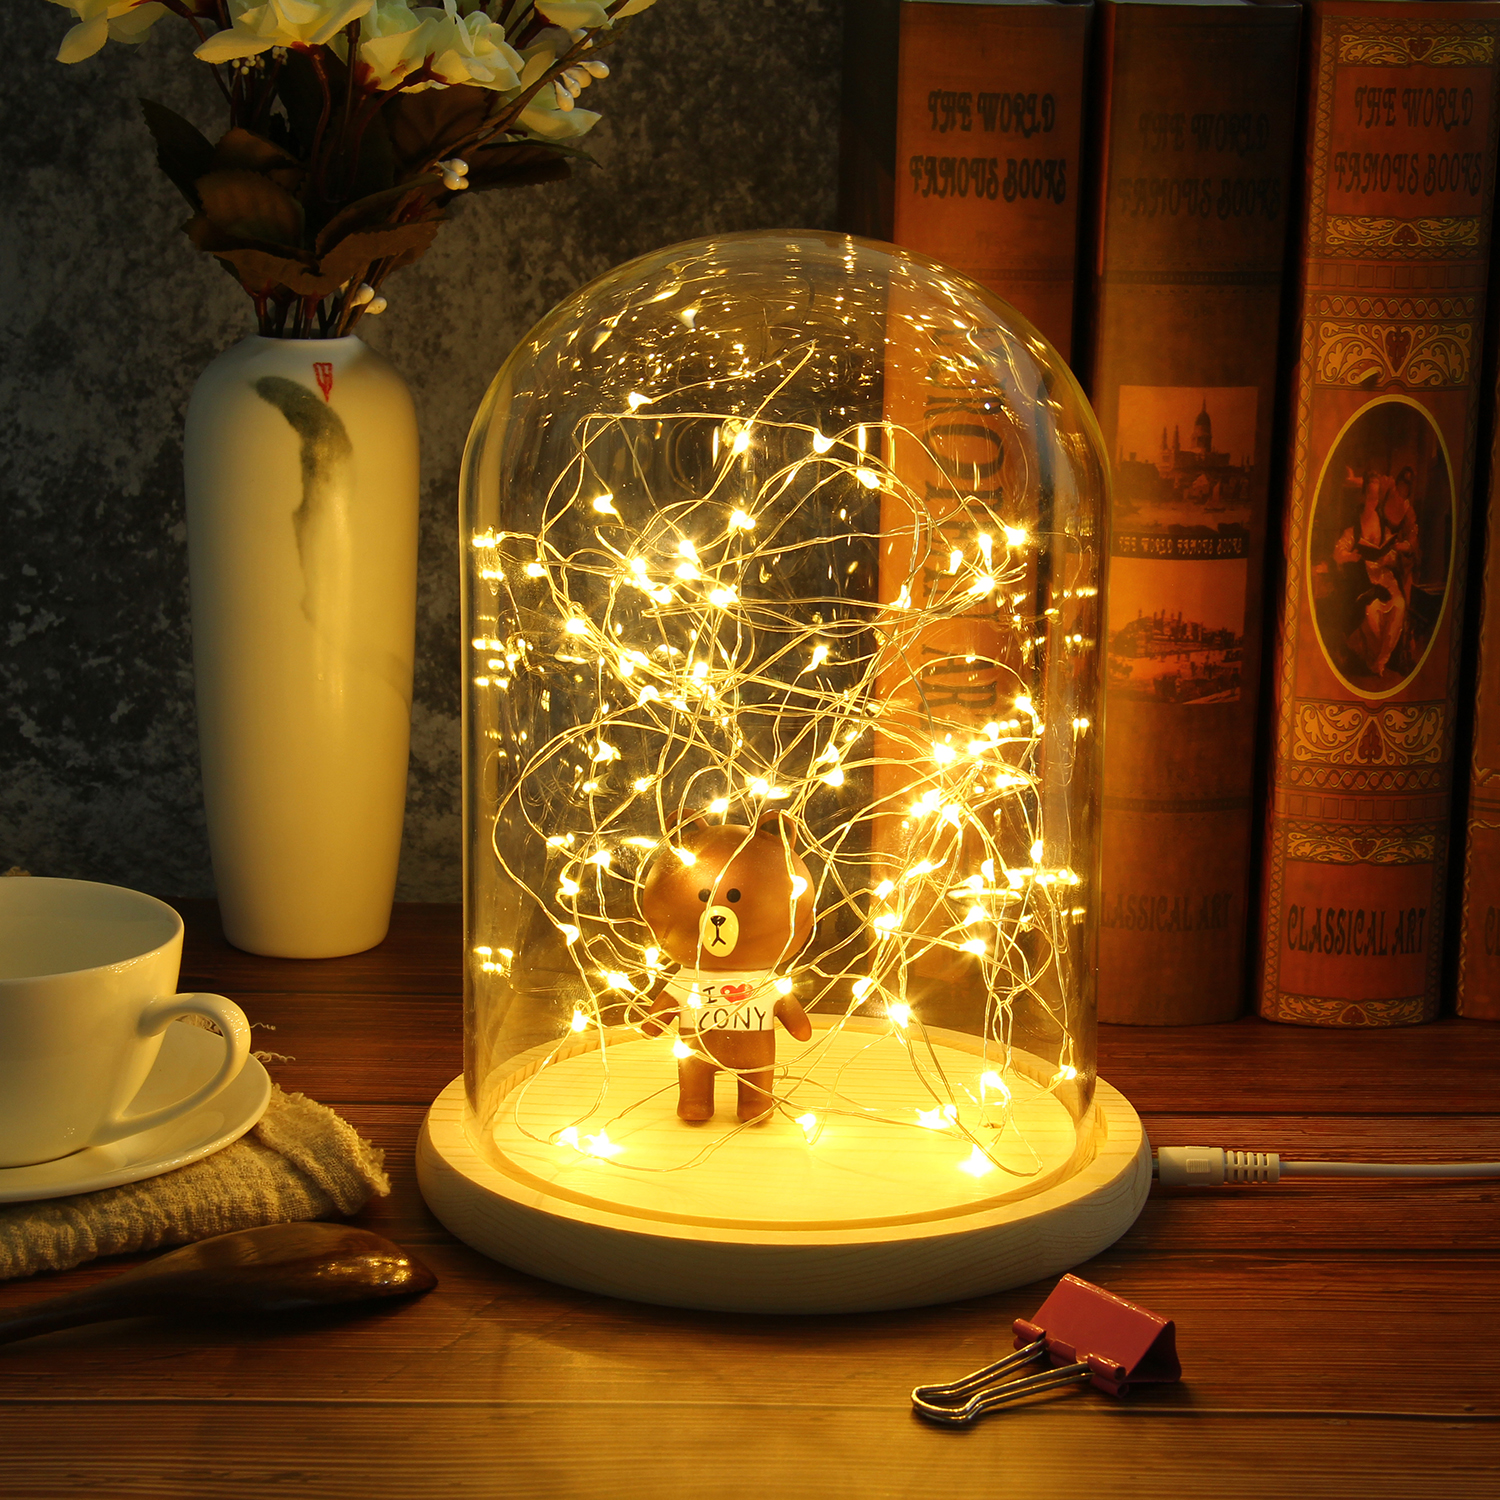 Creative Glass Dome Bell Jar Display Wooden Base with LED Light Warm Fairy Starry String Lights Desk Ornament for Home Decor 11